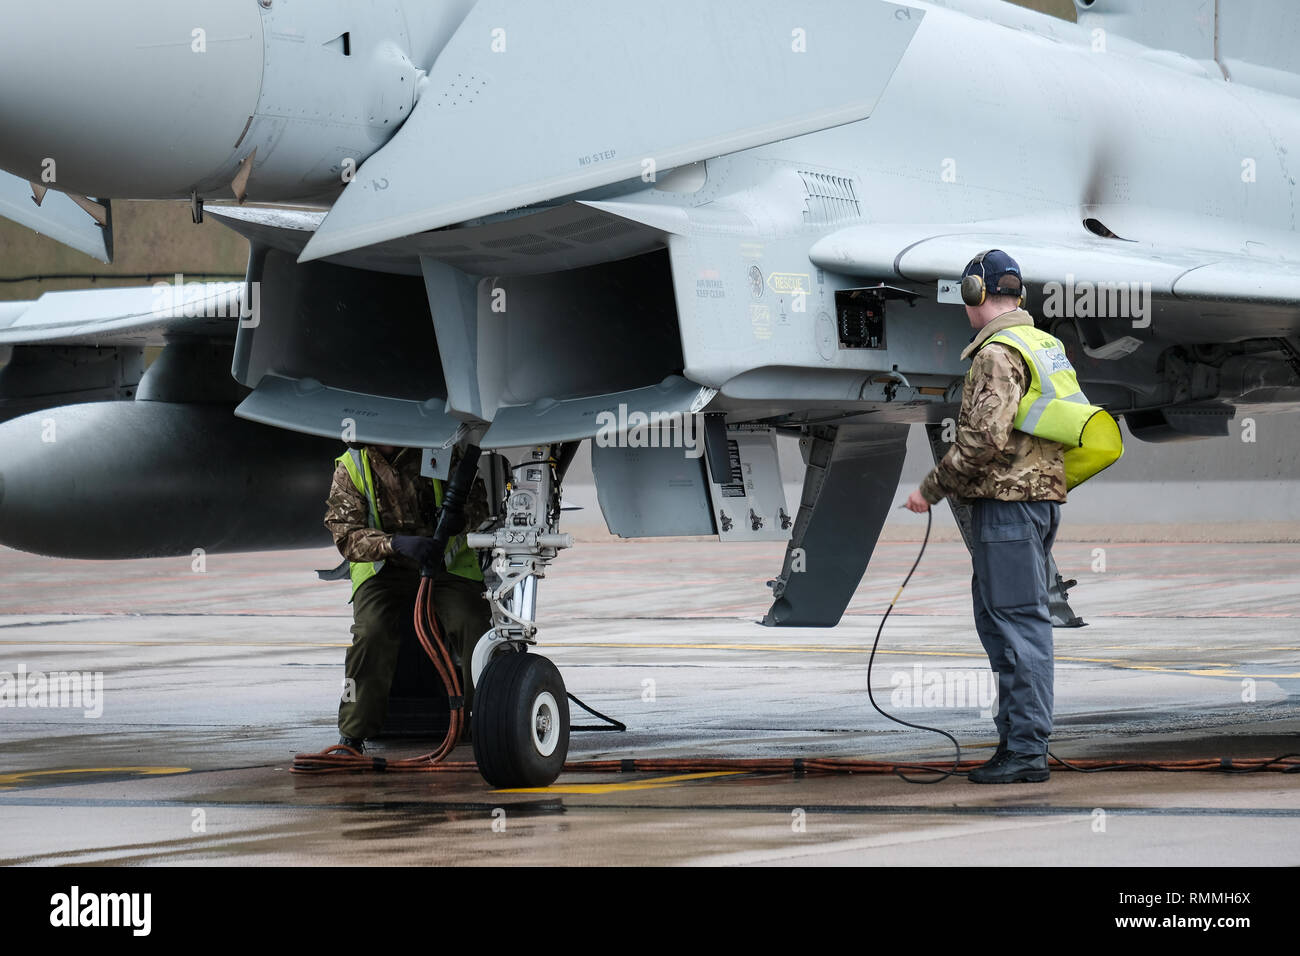 Ground crew conducting a pre-flight check over an RAF Tornado jet fighter at RAF Lossiemouth base, Moray, Scotland - Stock Image